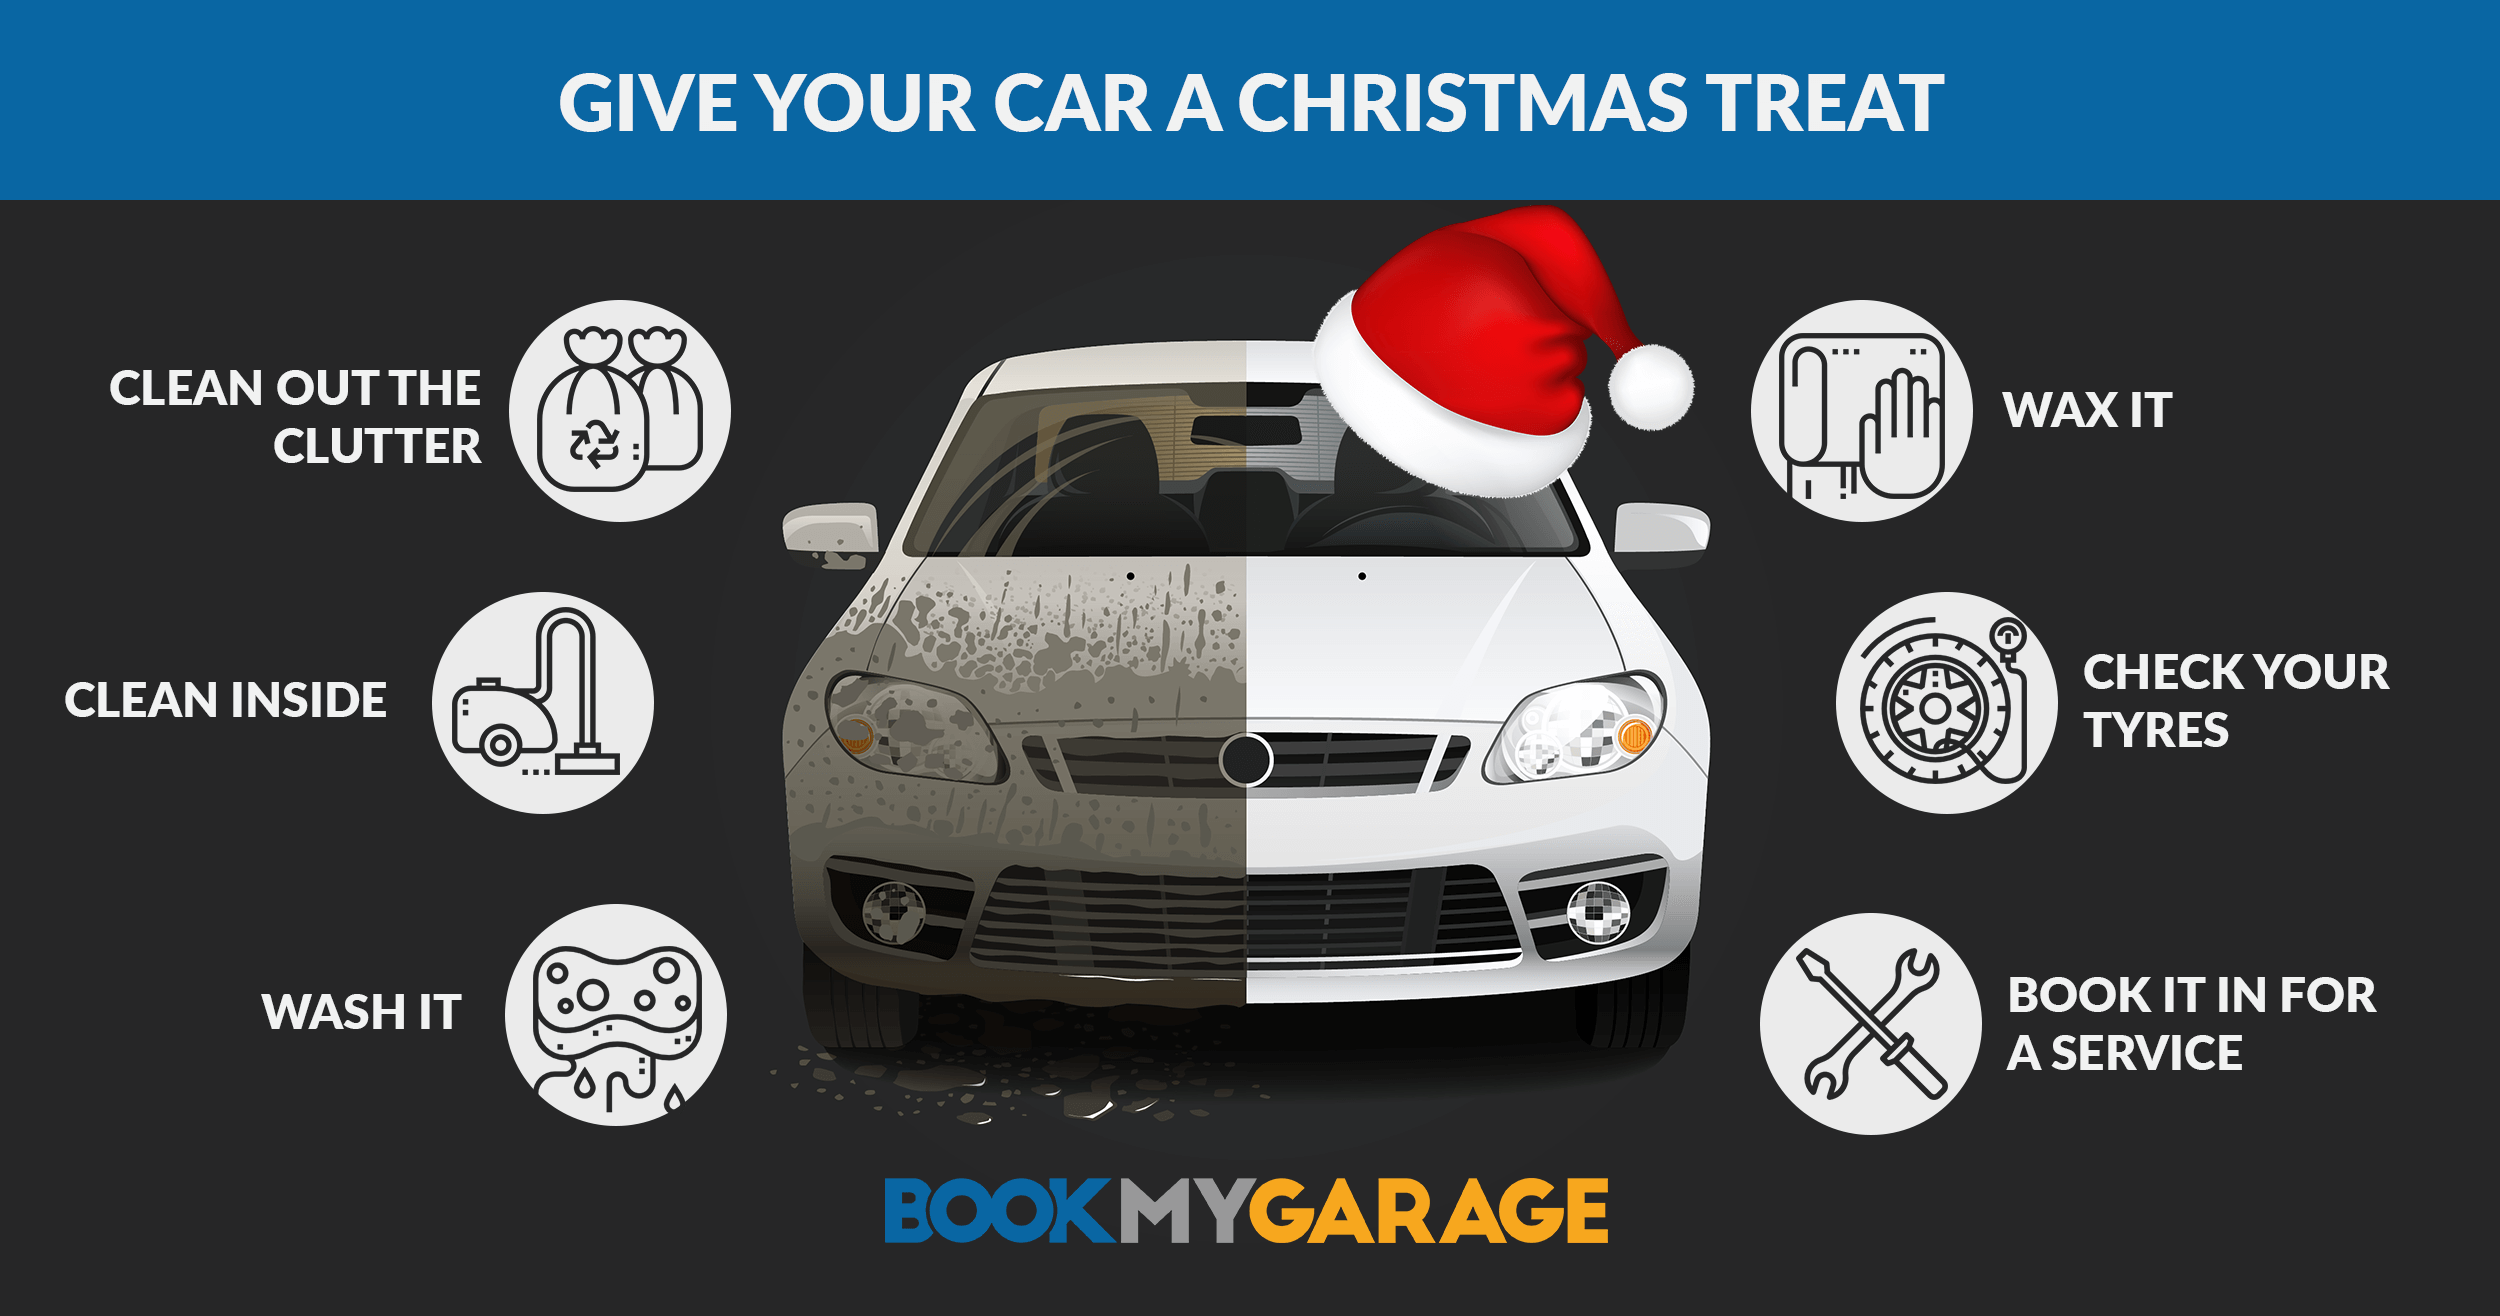 BookMyGarage infographic showing half a dirty car and then clean white car on the other side with ways to clean the vehicle around the outside